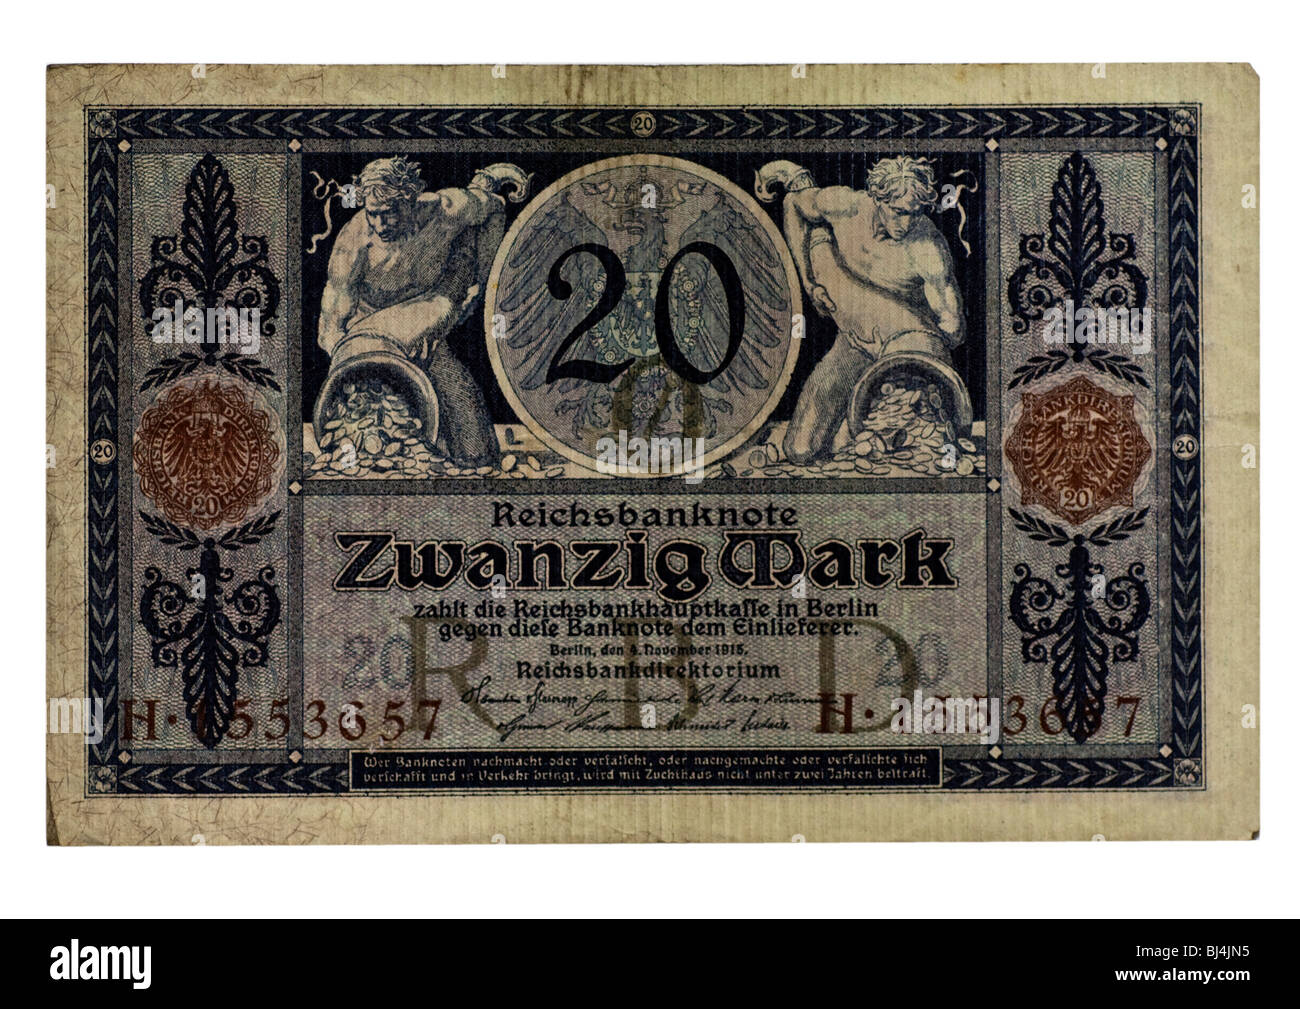 Front of a Reichsbanknote bill of the Central Bank over 20 marks, Berlin, board of the Central Bank of Germany, Stock Photo